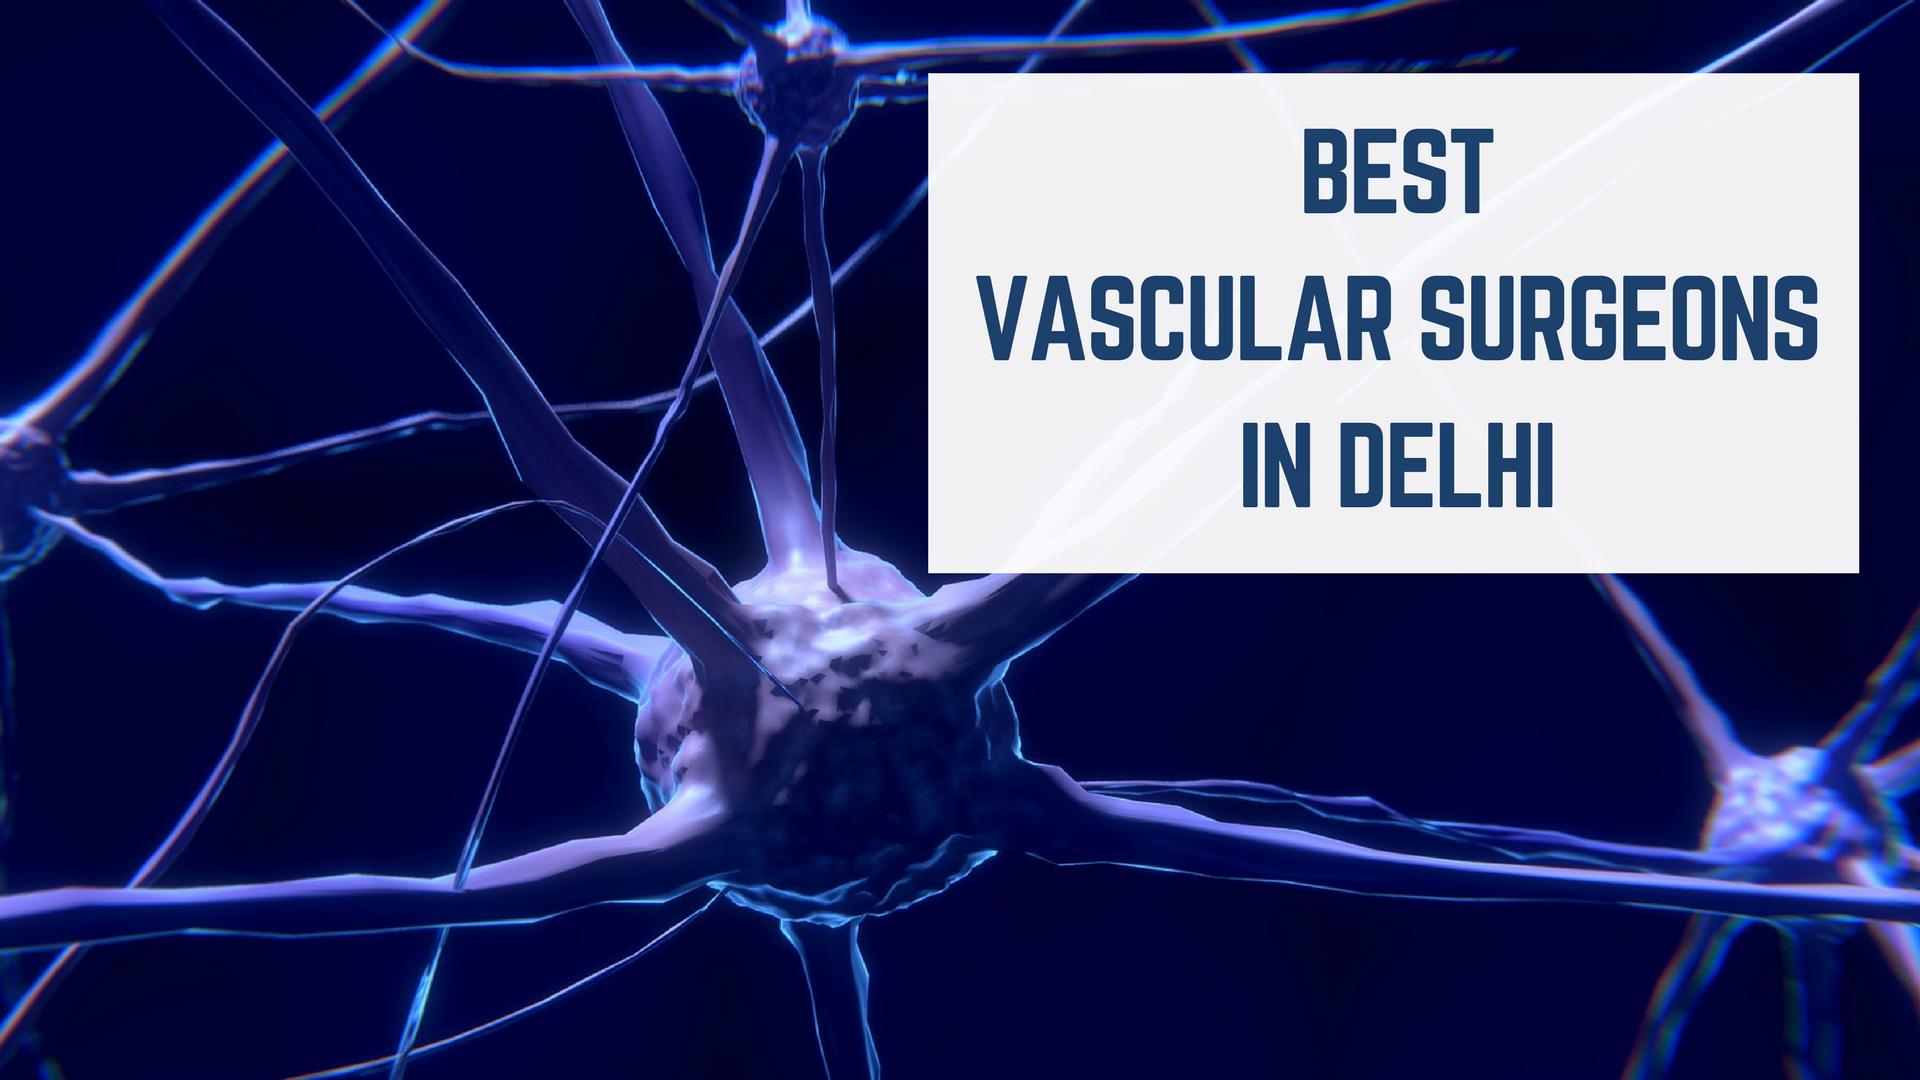 Essencz- Best Vascular Surgeons in Delhi - Essencz